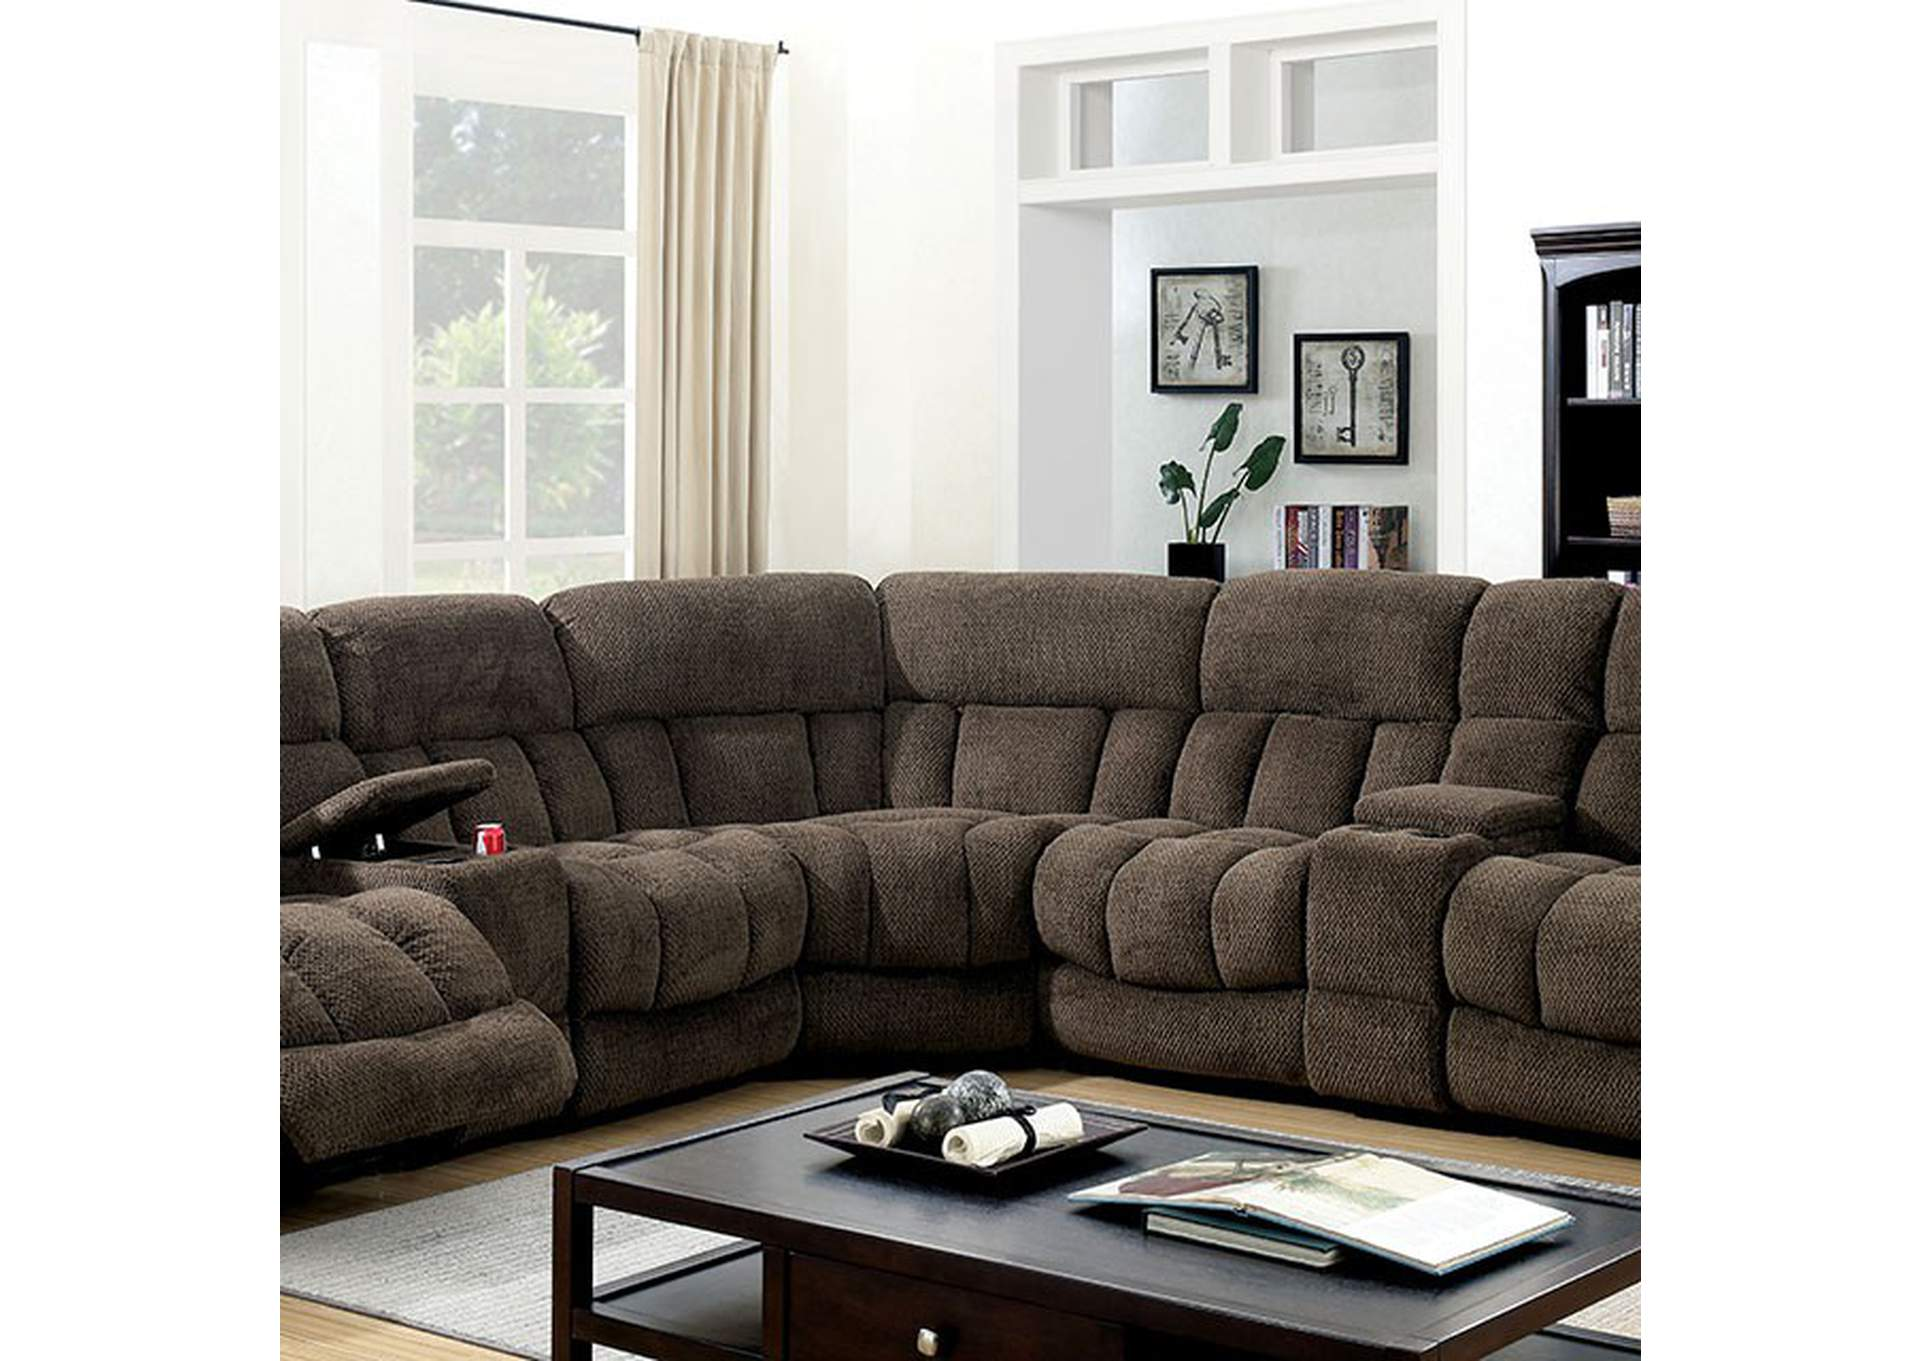 Irene Brown Sectional,Furniture of America